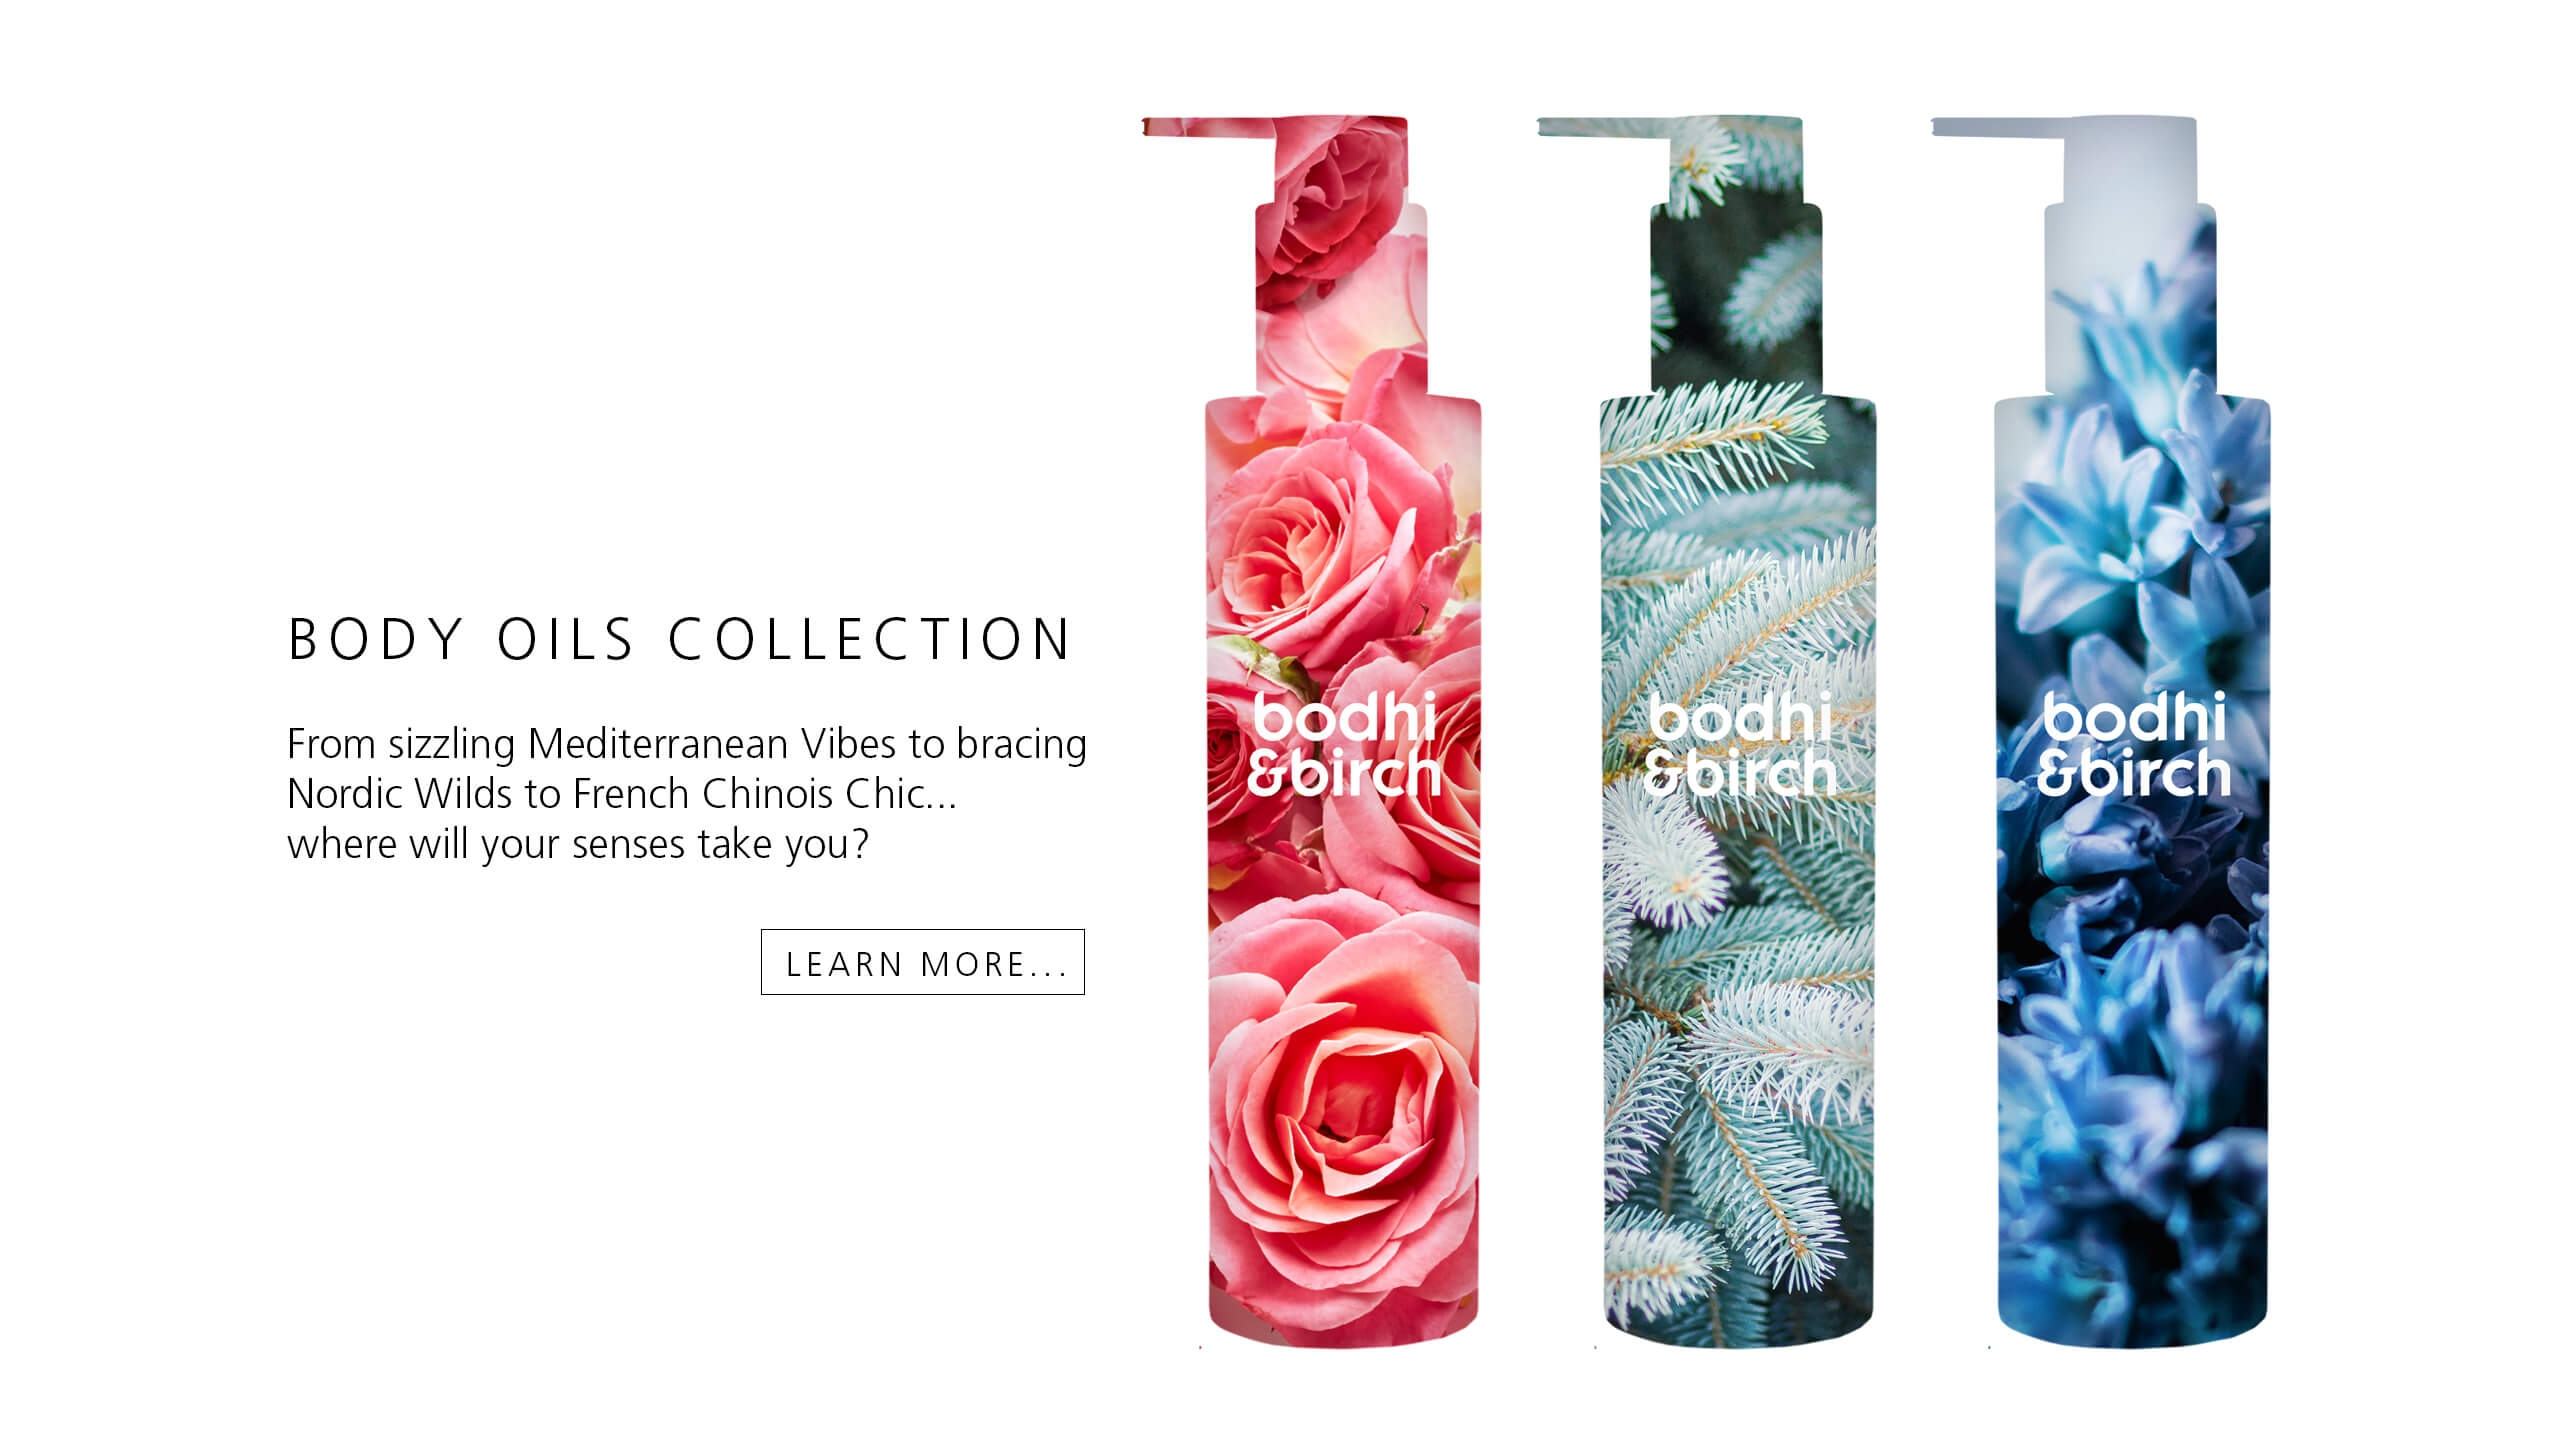 Body Oils Collection